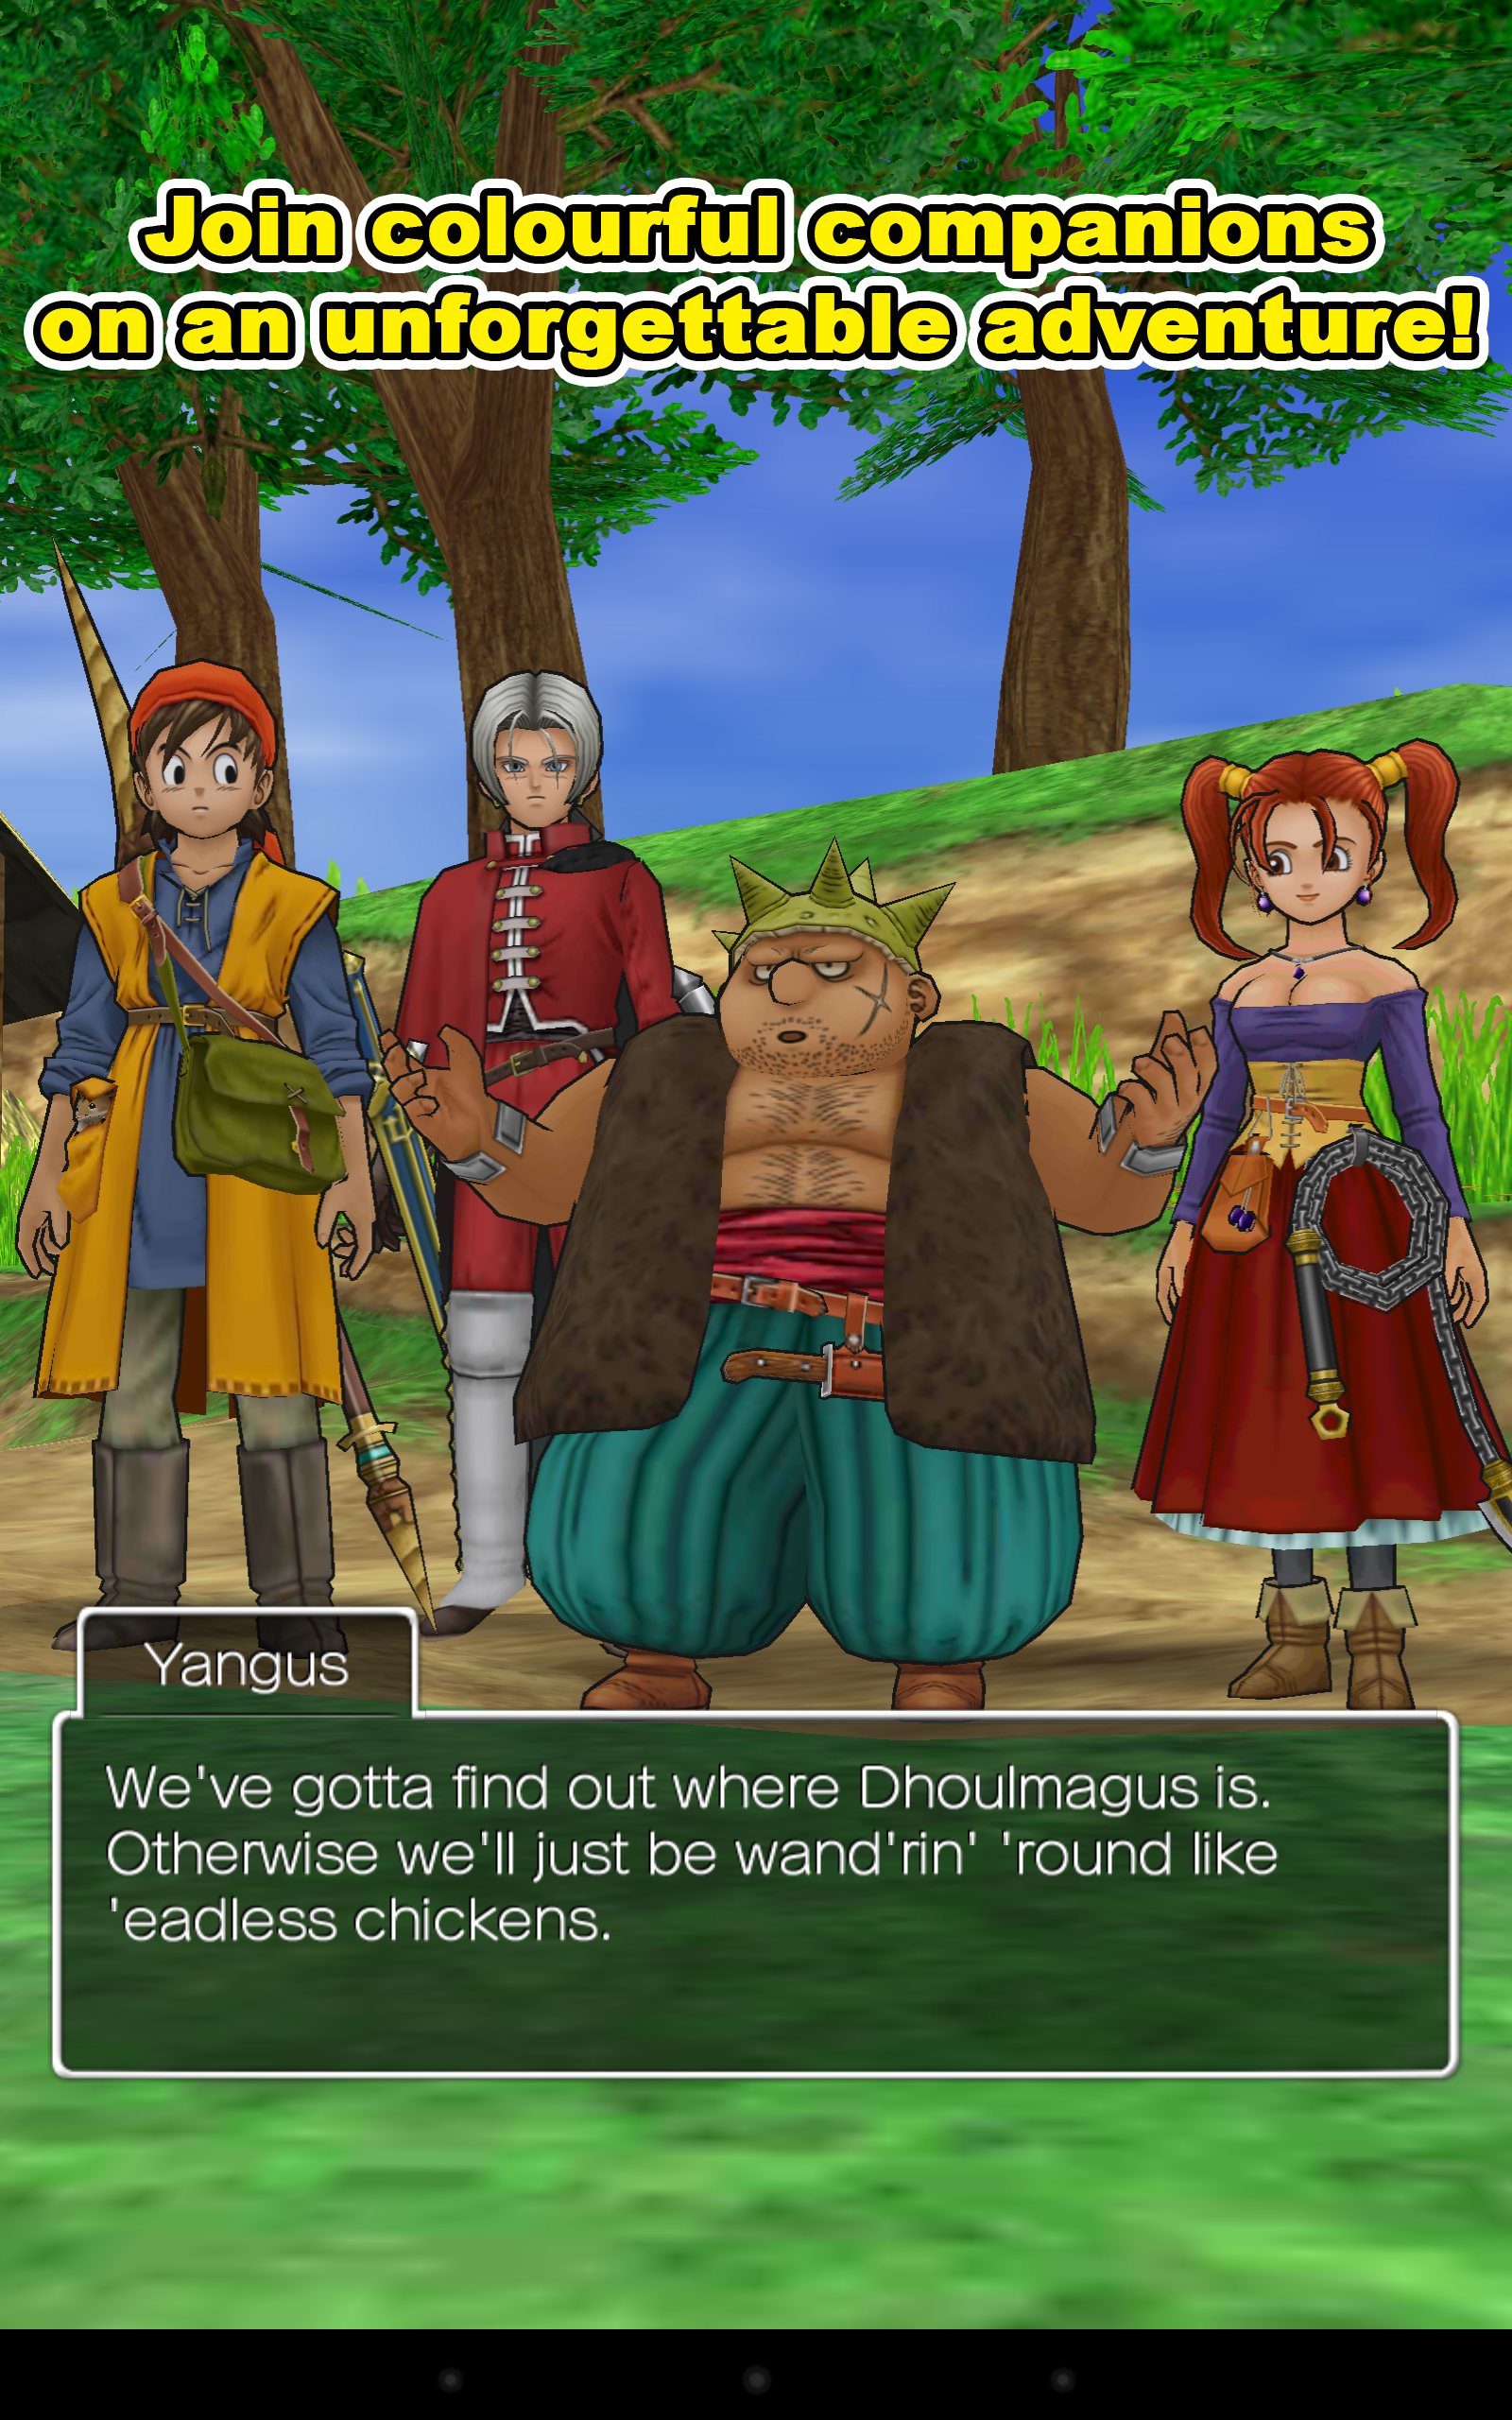 [New Game] Square Enix Releases JRPG Classic Dragon Quest ...